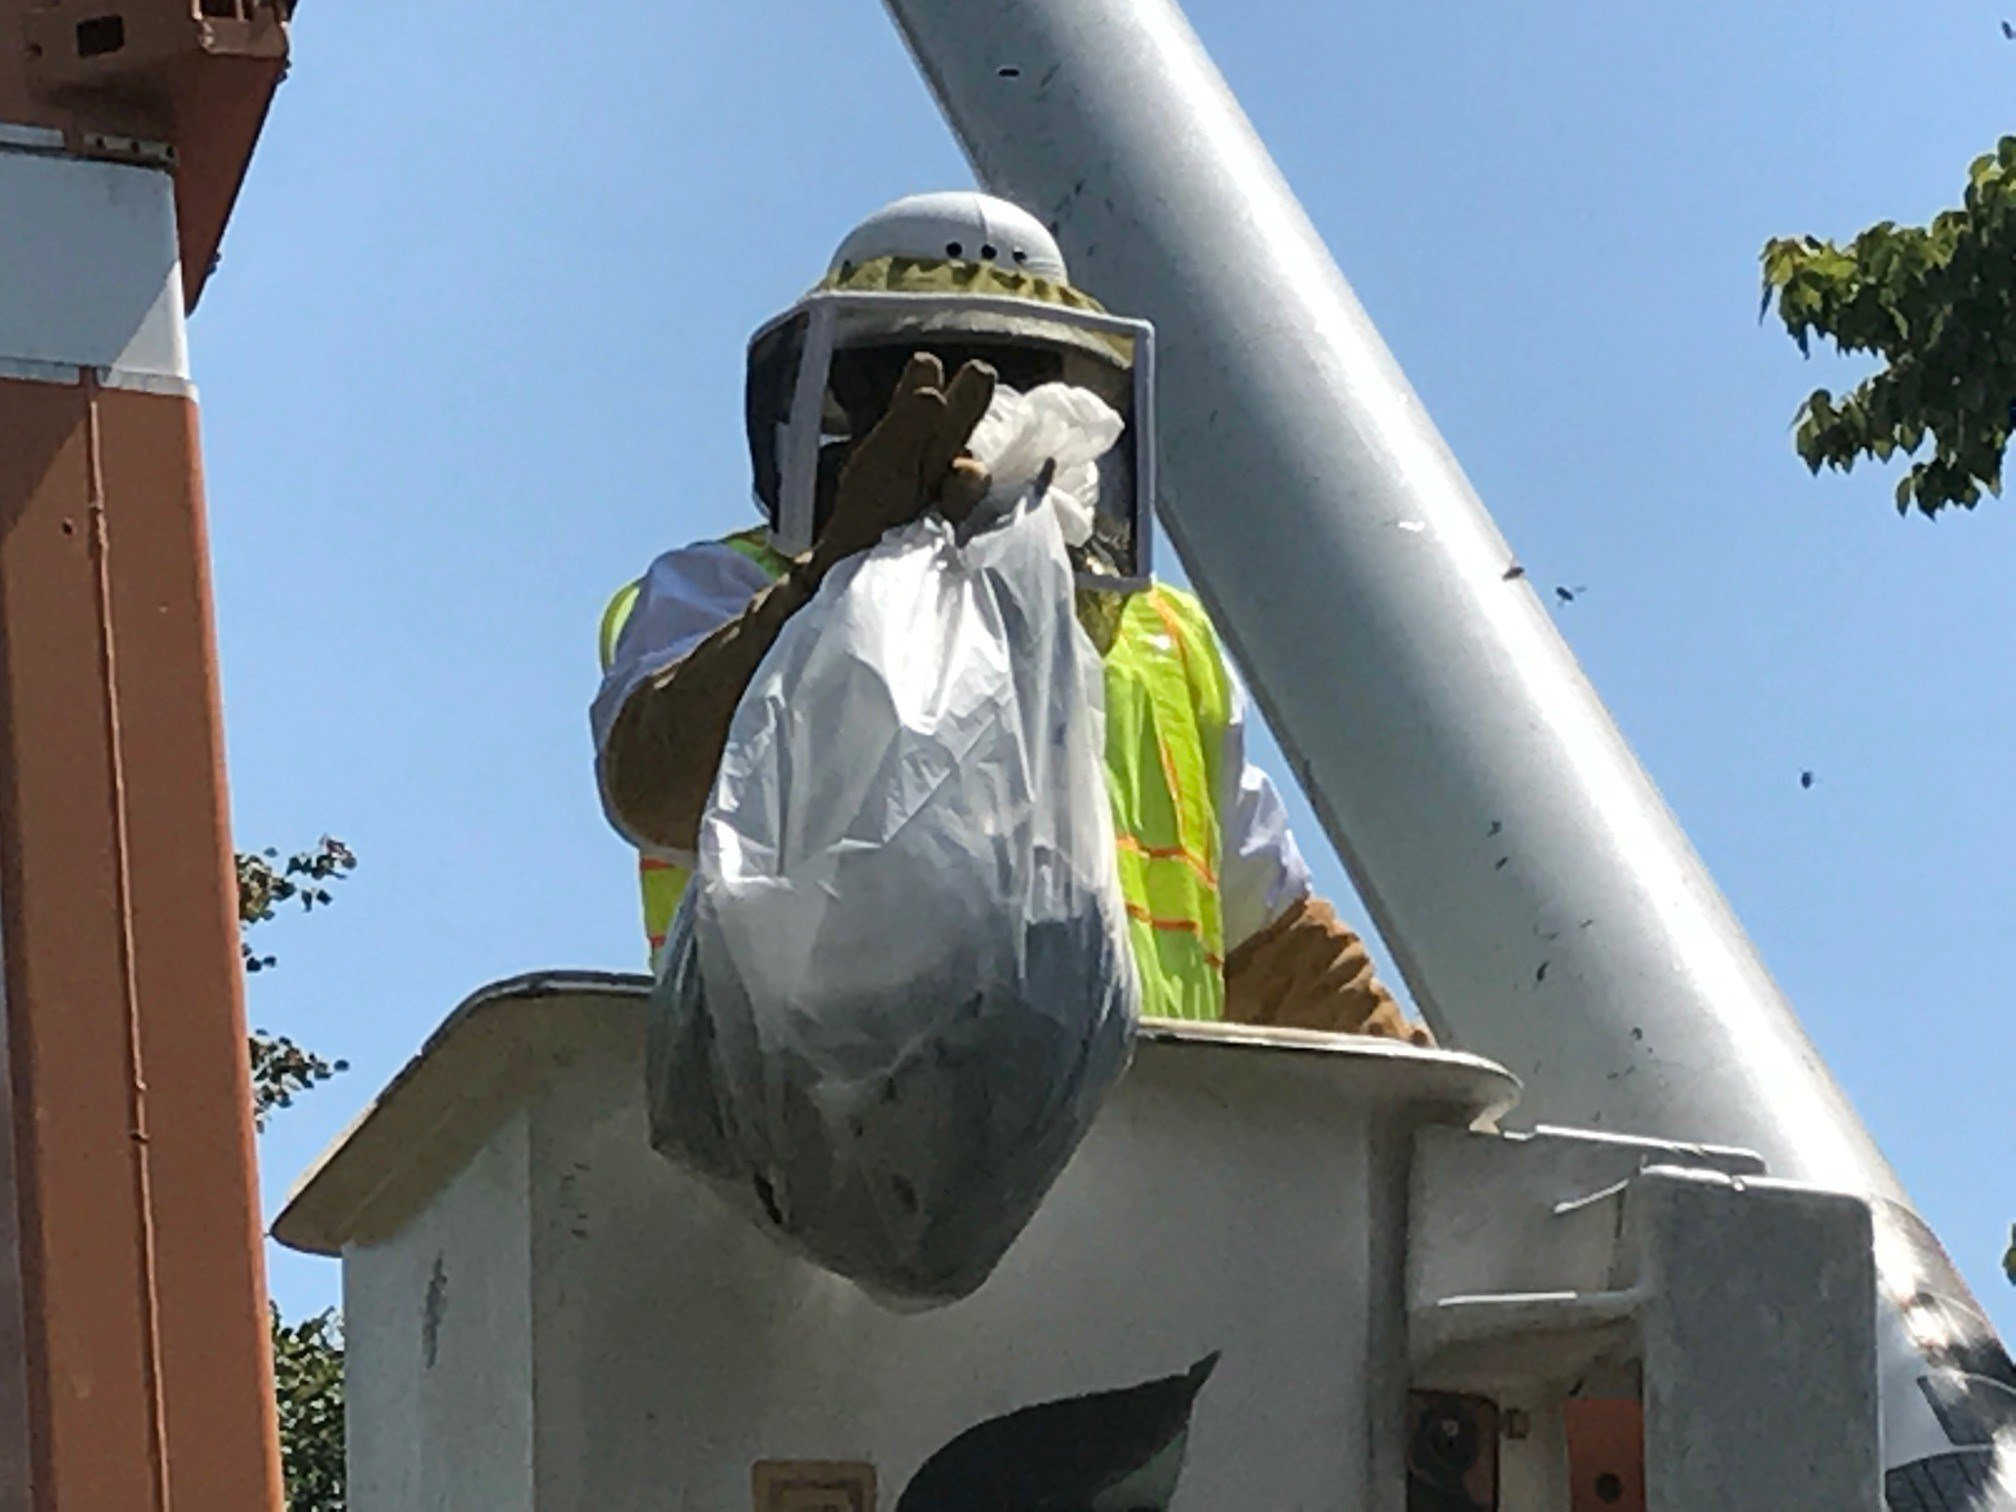 A St. Louis Forestry Division worker put a bag around a large hornets nest and cut it from a tree in the 3100 block of Whittier